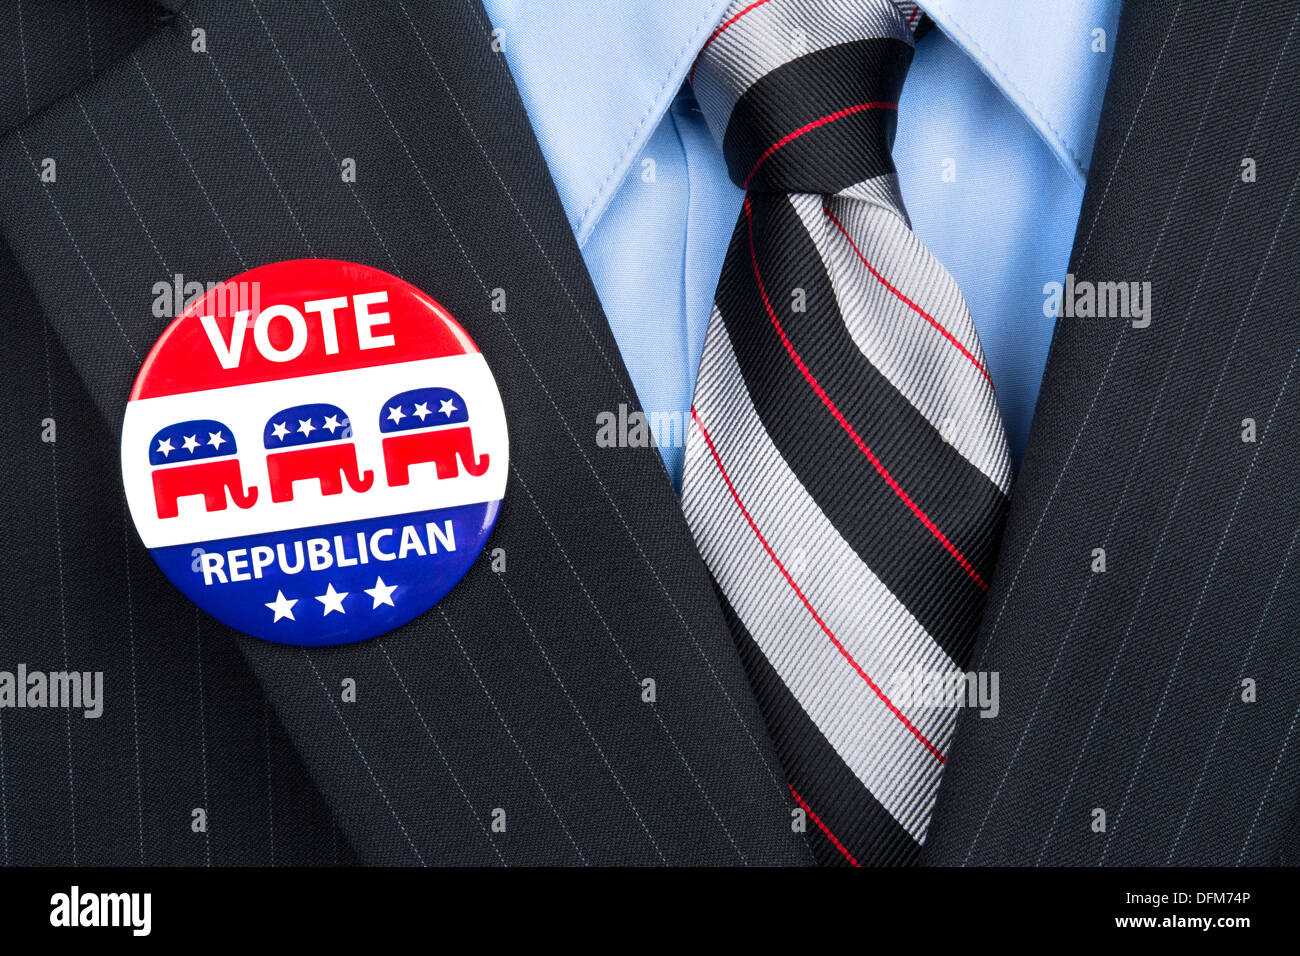 A republican voter proudly wears his party pin on his suit lapel. Stock Photo